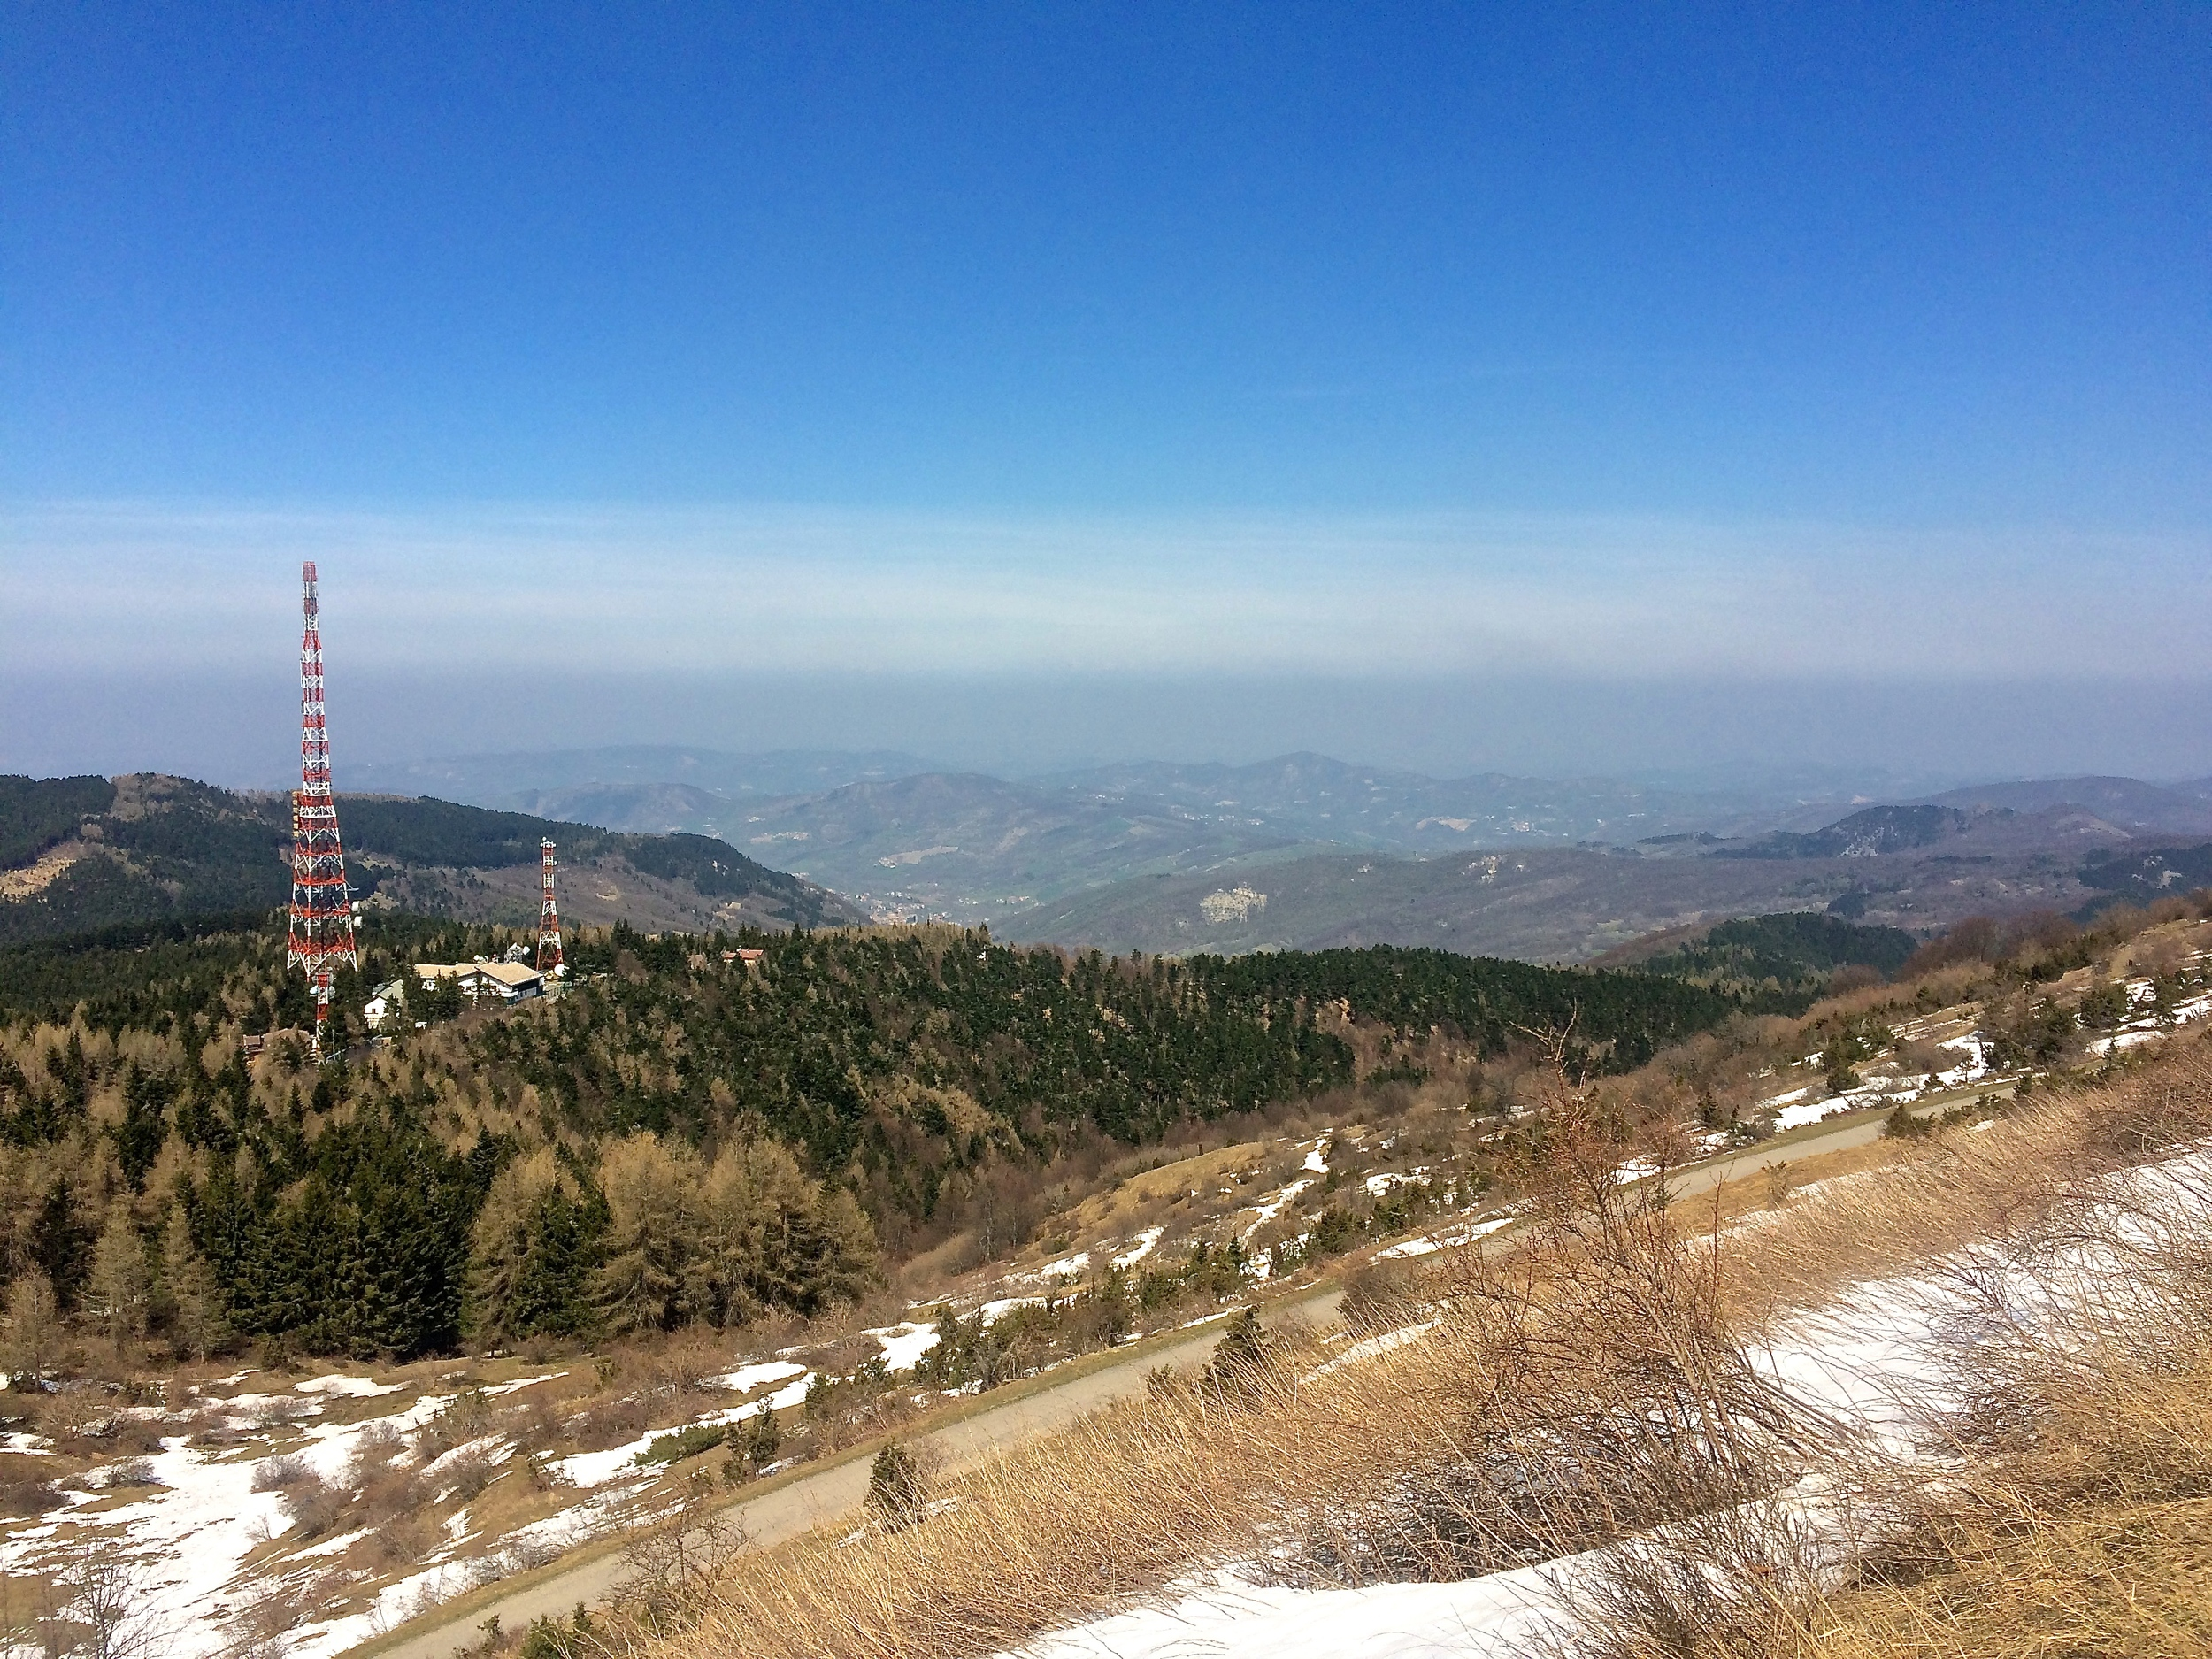 The view from Monte Penice, one of the highest points in the Ligurian Apennines, is a beautiful panorama, but elevation of the peak makes it a prime point for cell towers, of which it hosts at least ten.